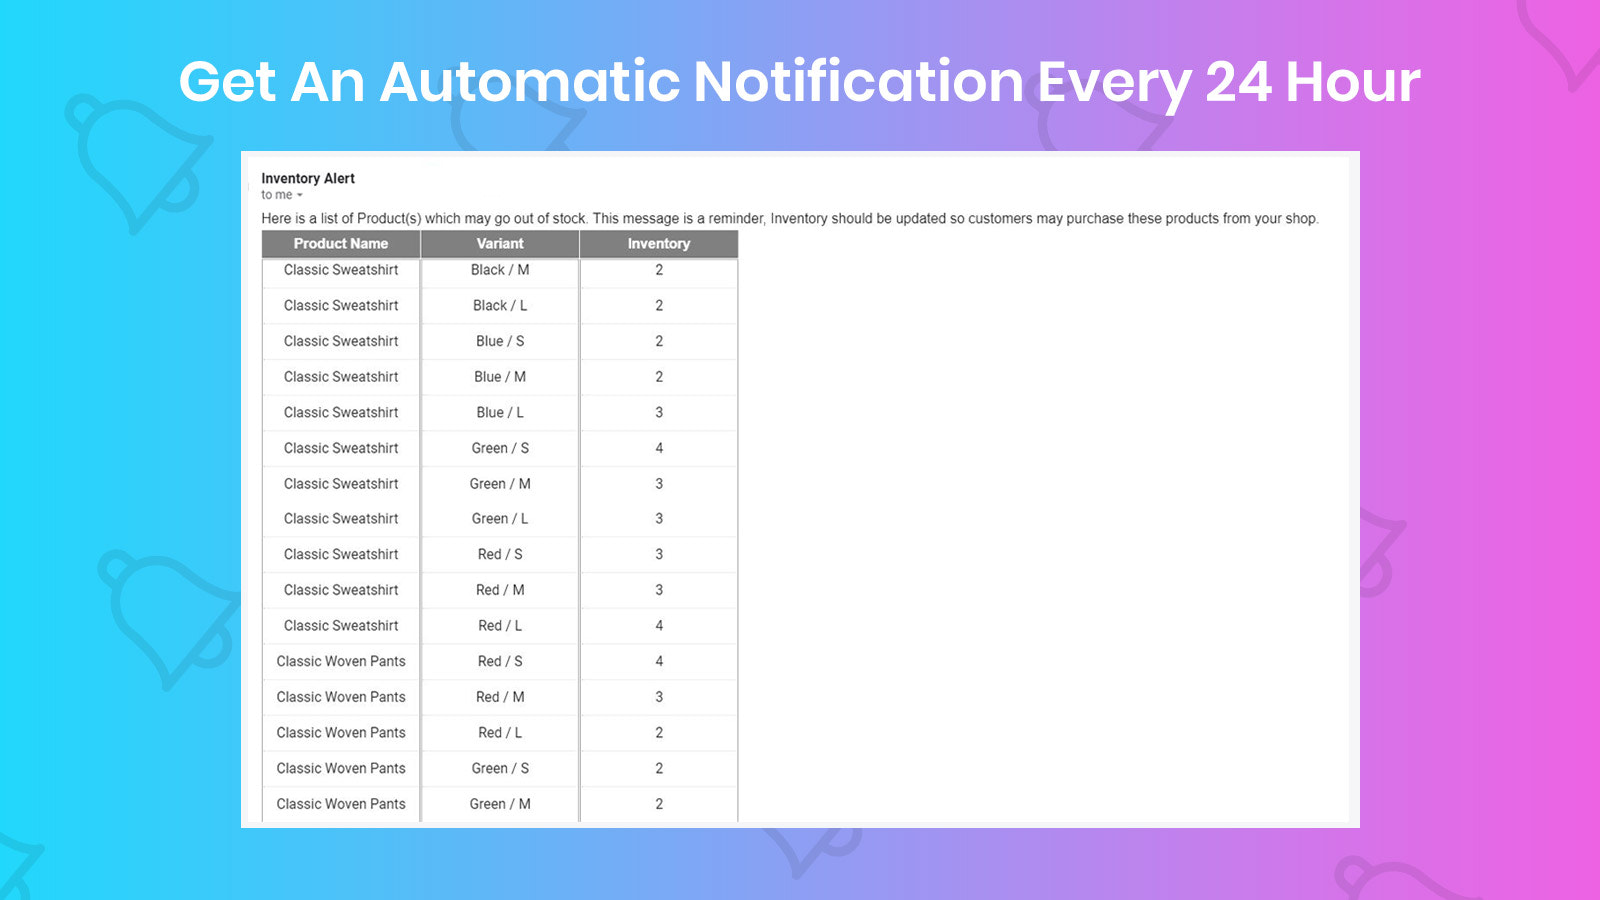 Get notified every 24 hours